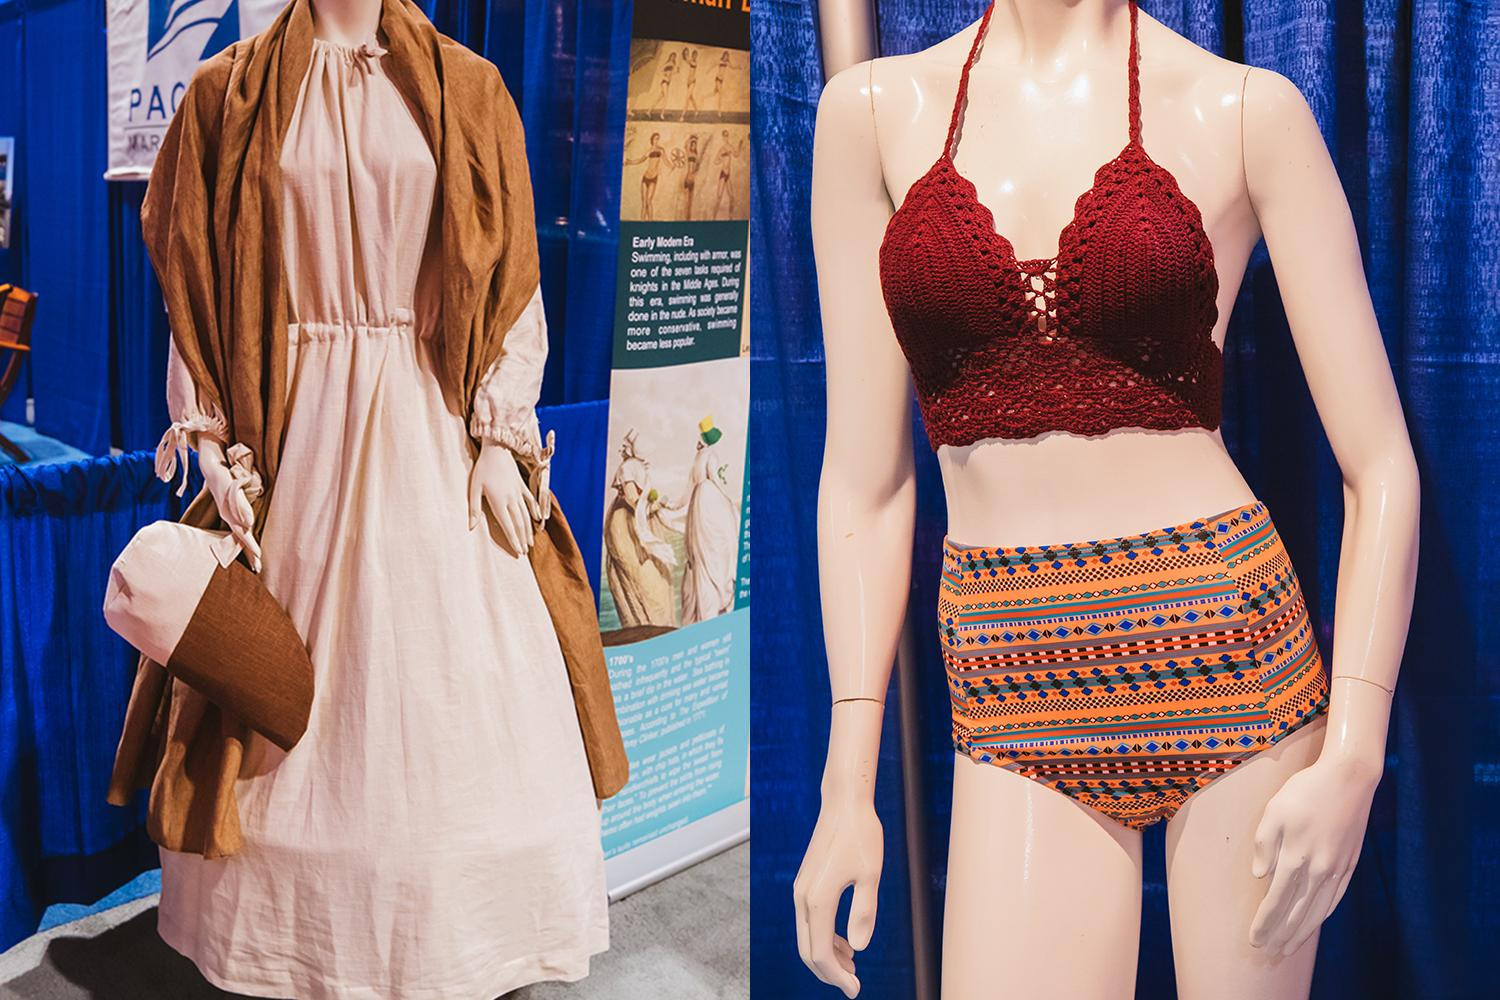 We've come a long way ladies! An exhibit called History of Bathing Suits is on display atThe Seattle Boat Show right now, which runs Jan. 24 through Feb. 1, 2020 at both CenturyLink Field Event Center and South Lake Union. Hours and tickets info can be found online. (Image: Sunita Martini / Seattle Refined)